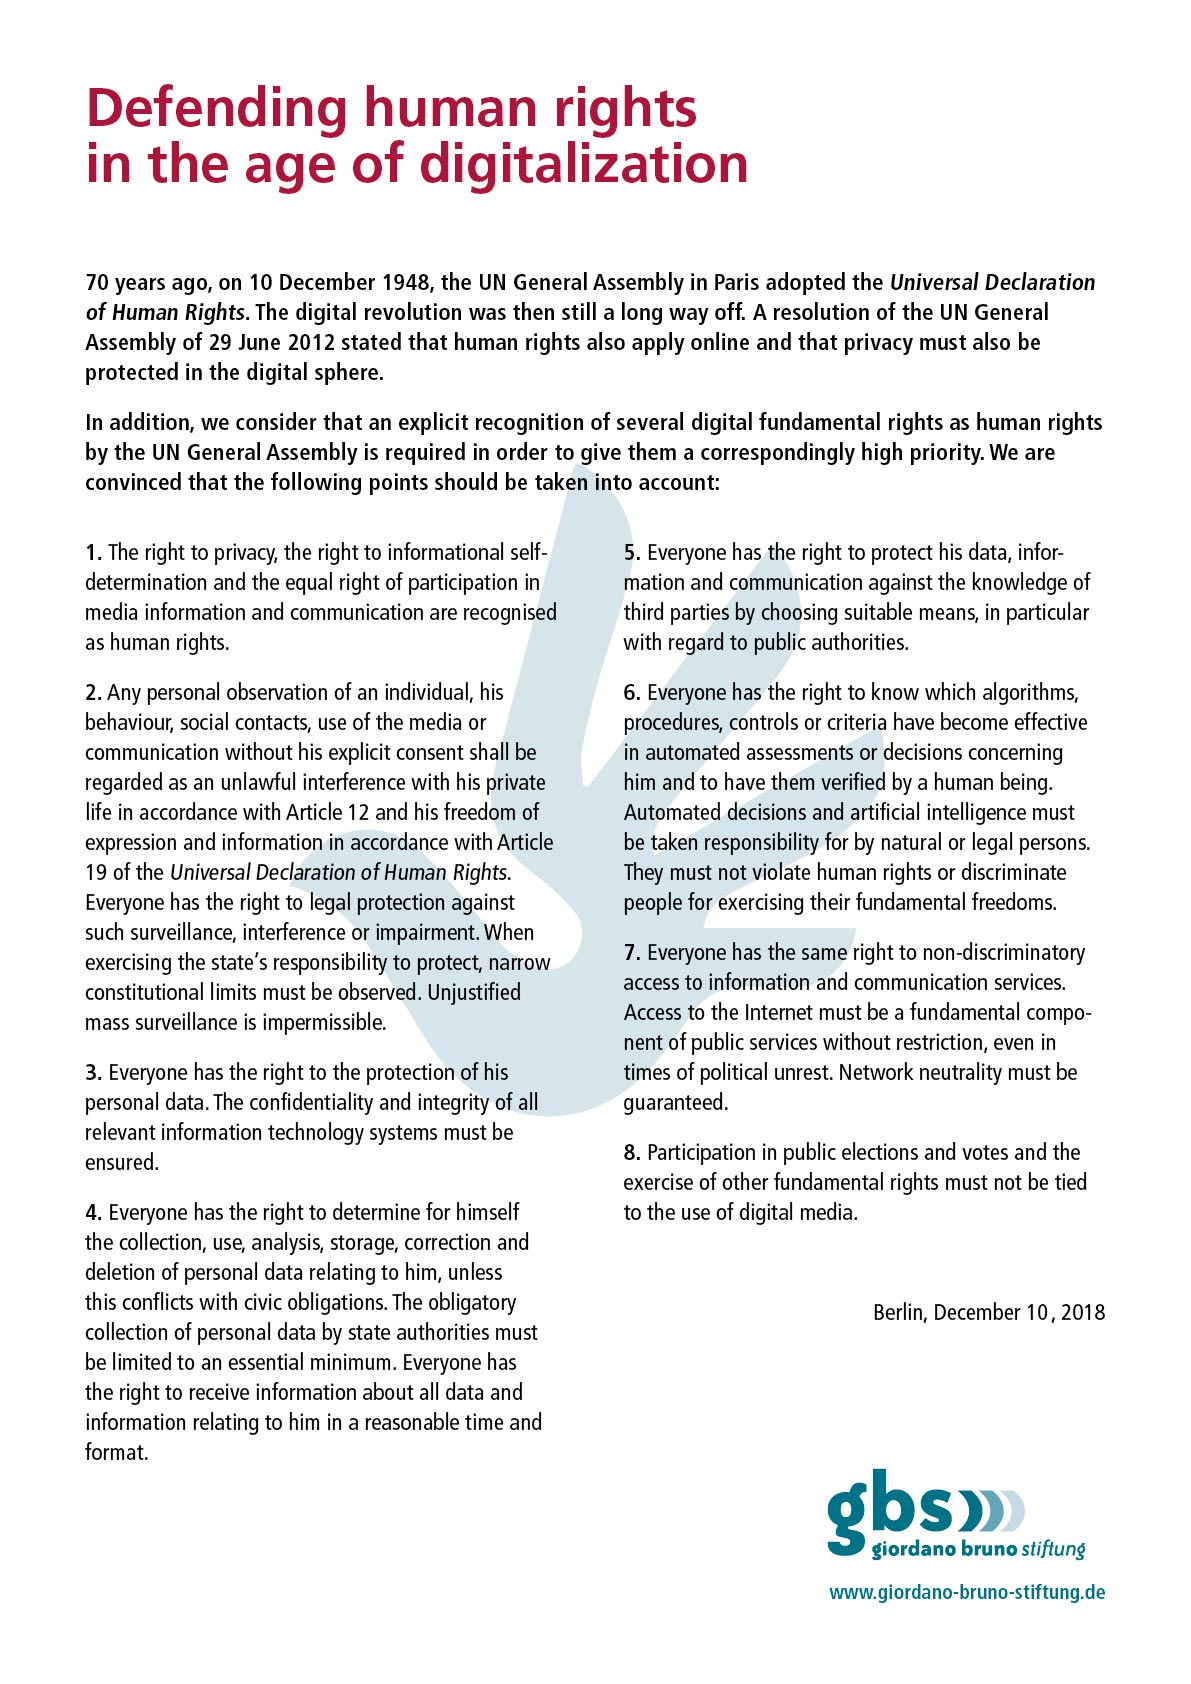 Document: Defending human rights in the age of digitaliszation